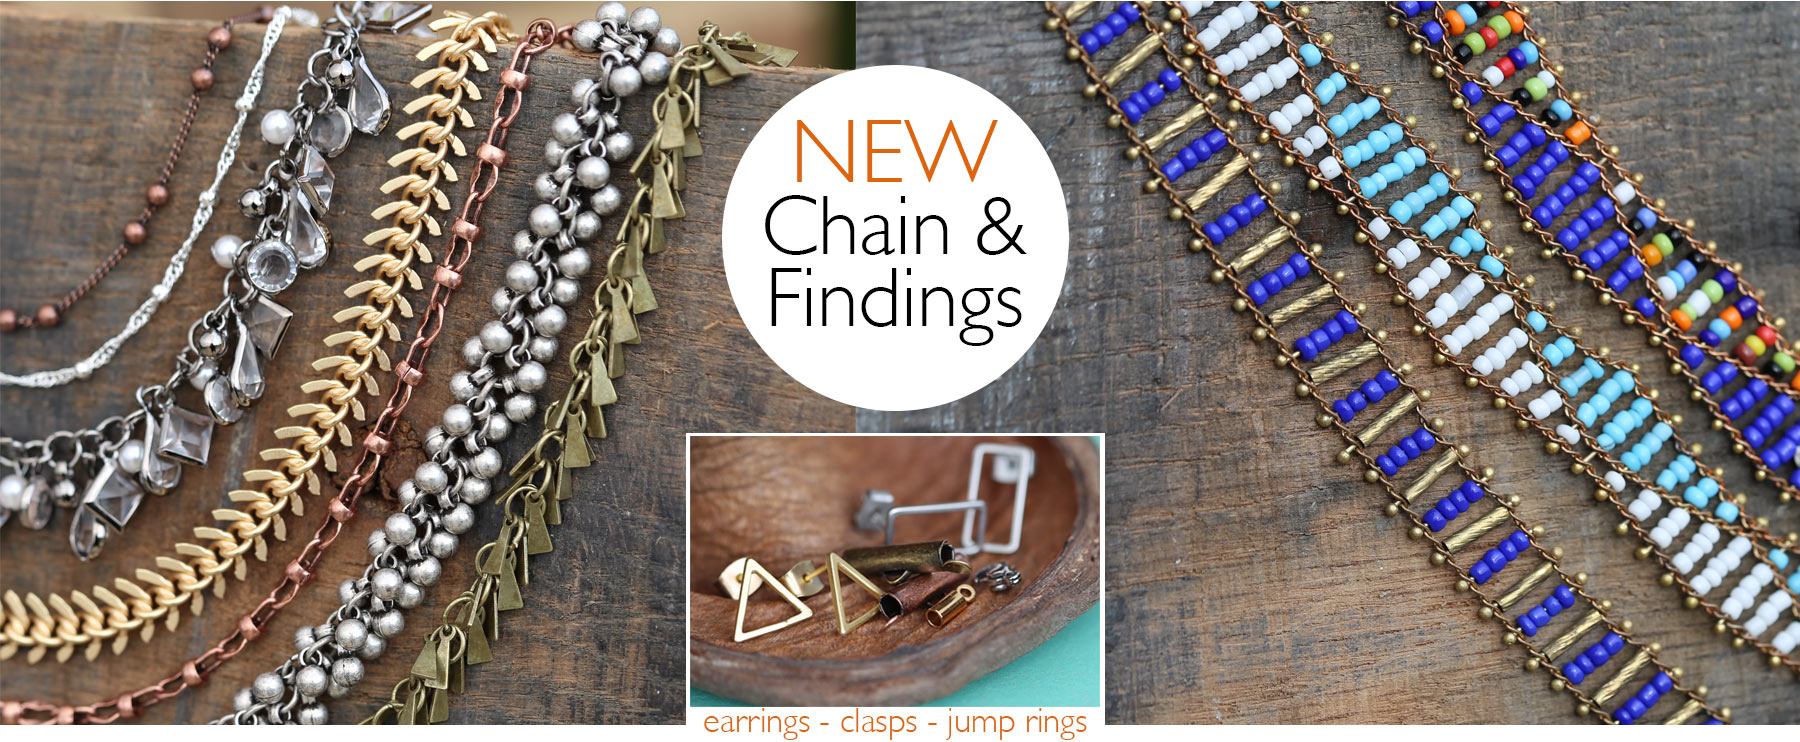 New Chain and Findings